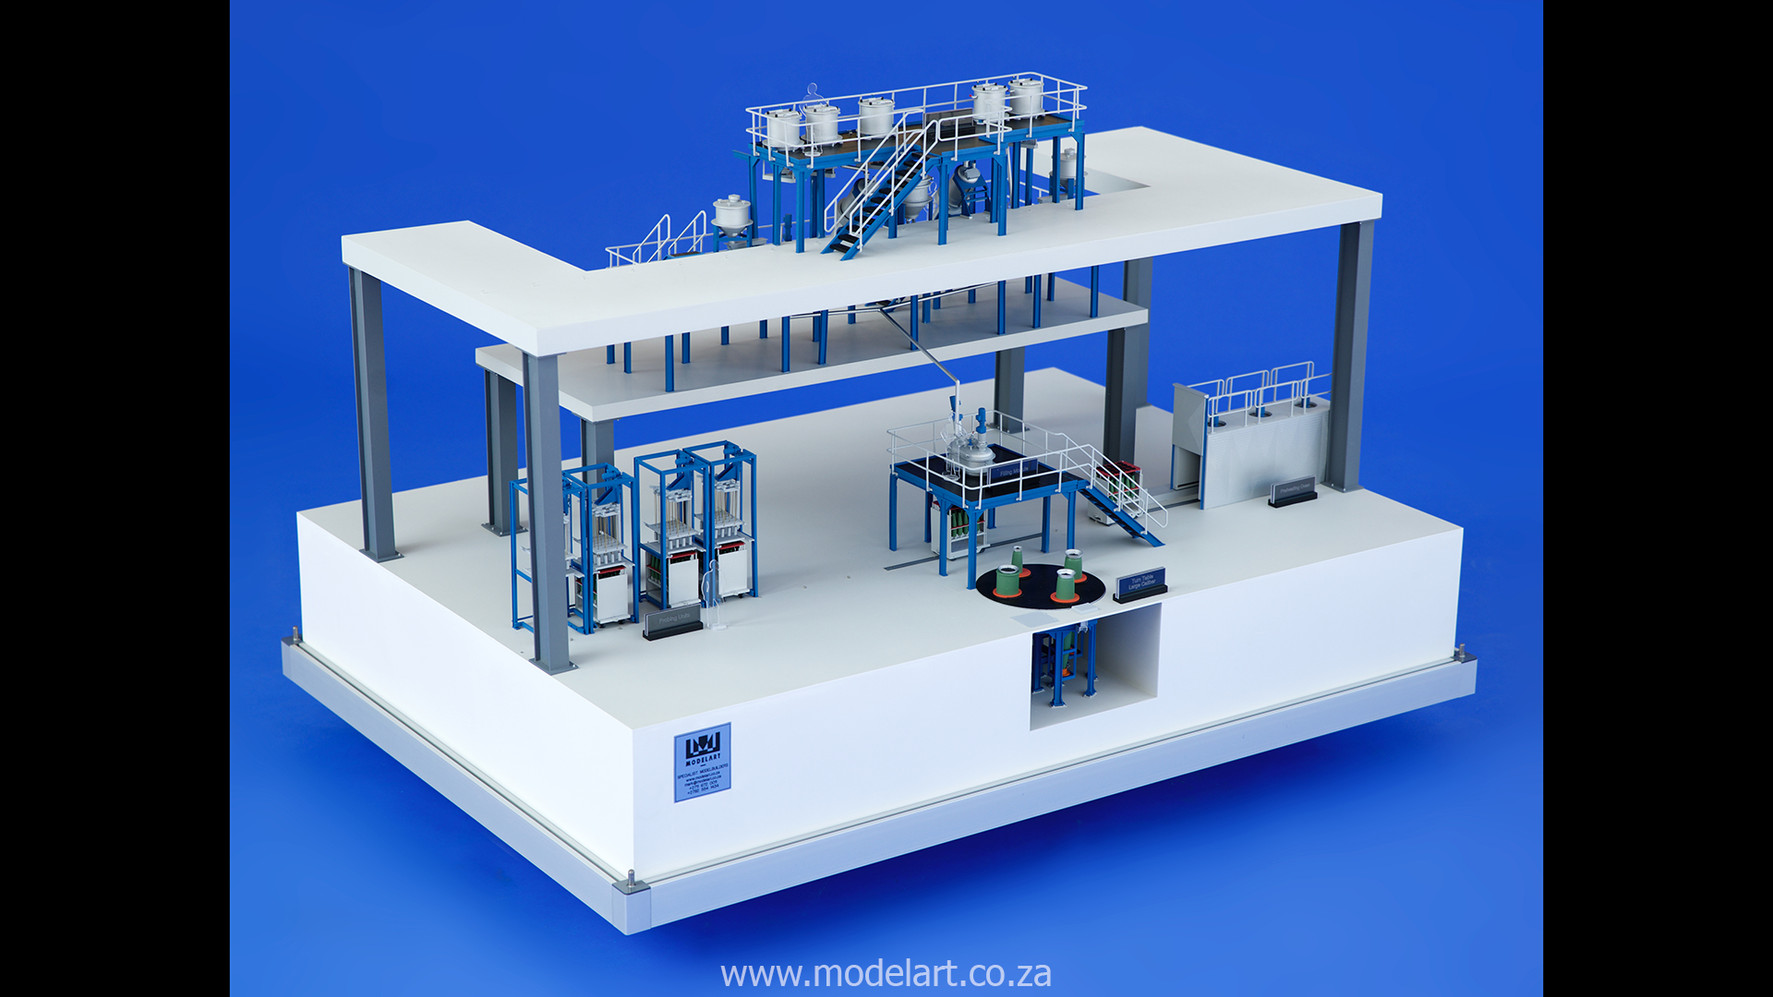 Architectural-Scale-Model-Engineering-Denel Munitions Plant 2-4